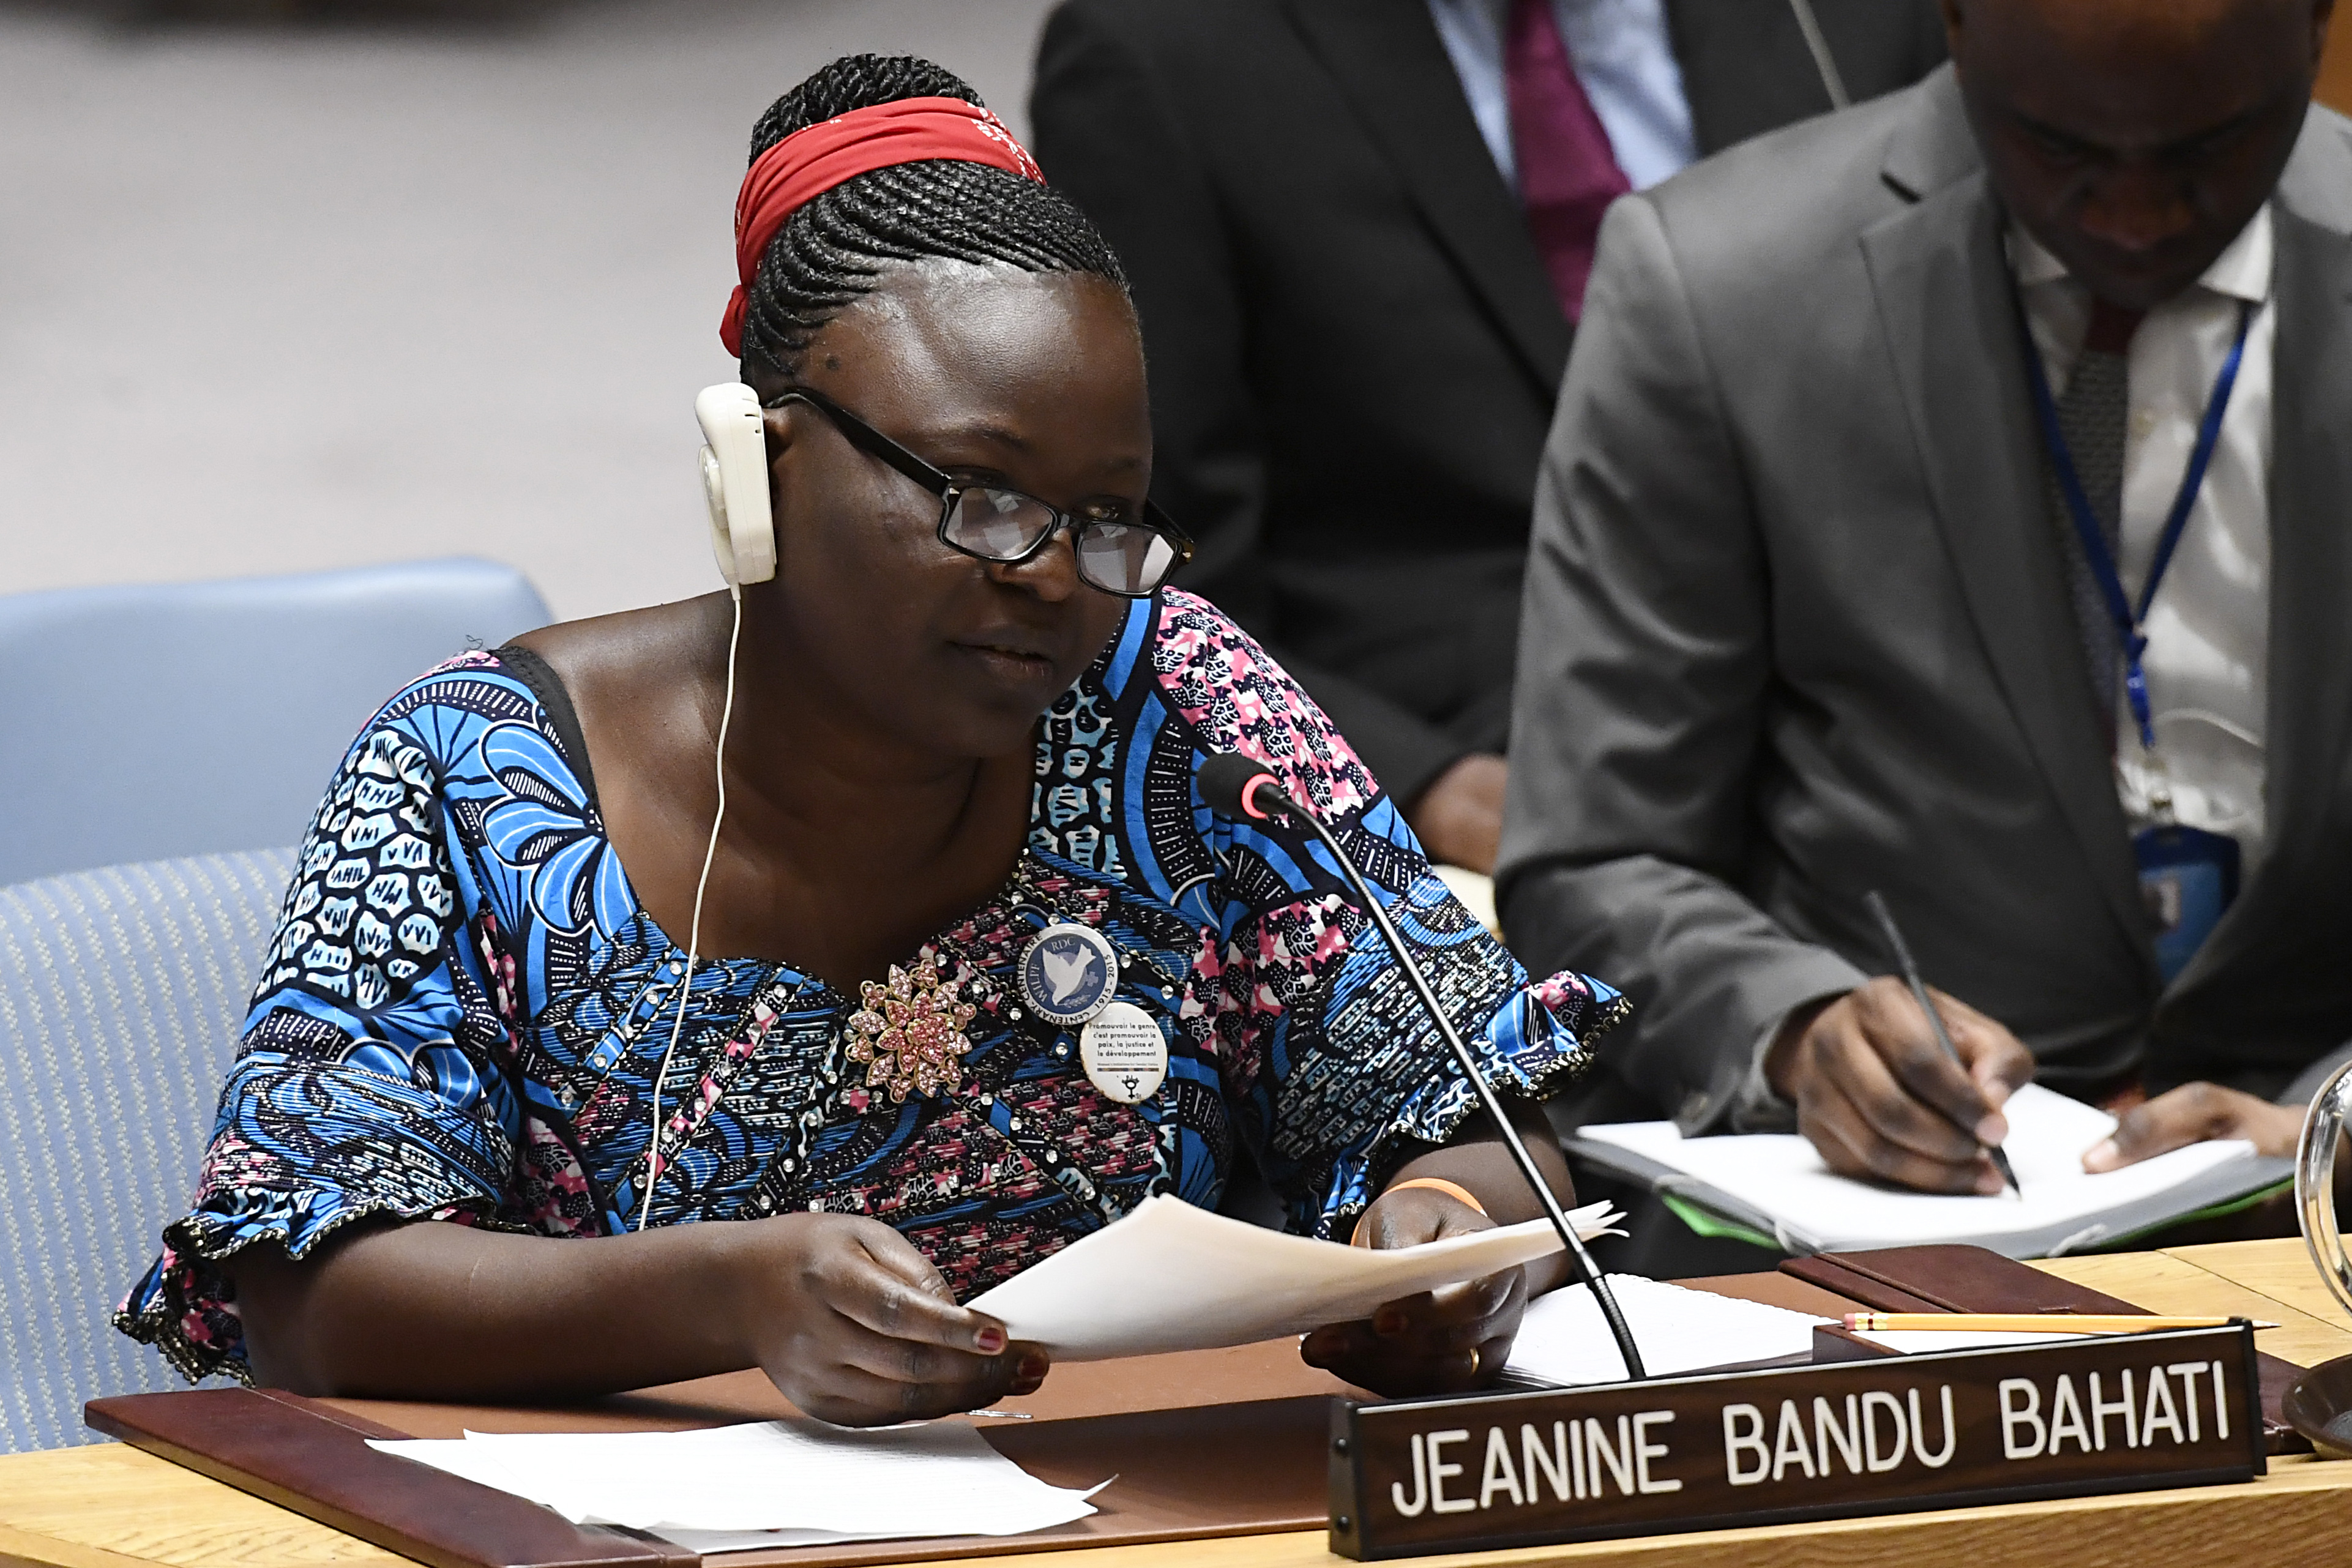 UN Security Council Briefing on the Democratic Republic of the Congo by Jeanine Bandu Bahati